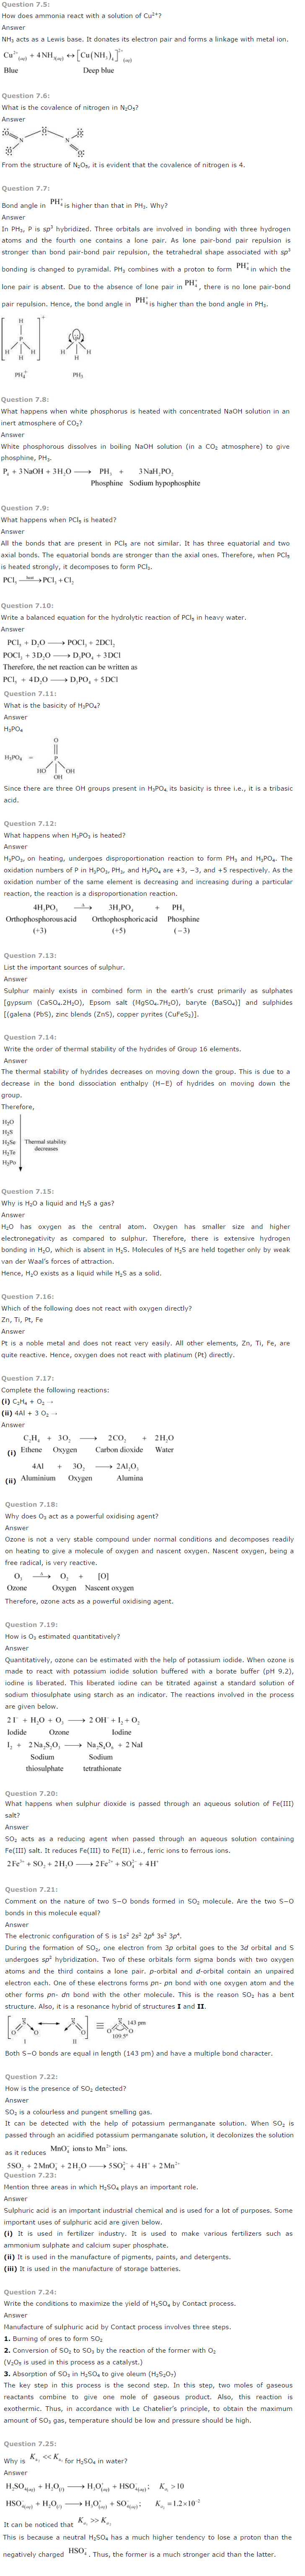 NCERT Solutions for Class 12th Chemistry Chapter 7 The p Block Elements Image by AglaSem